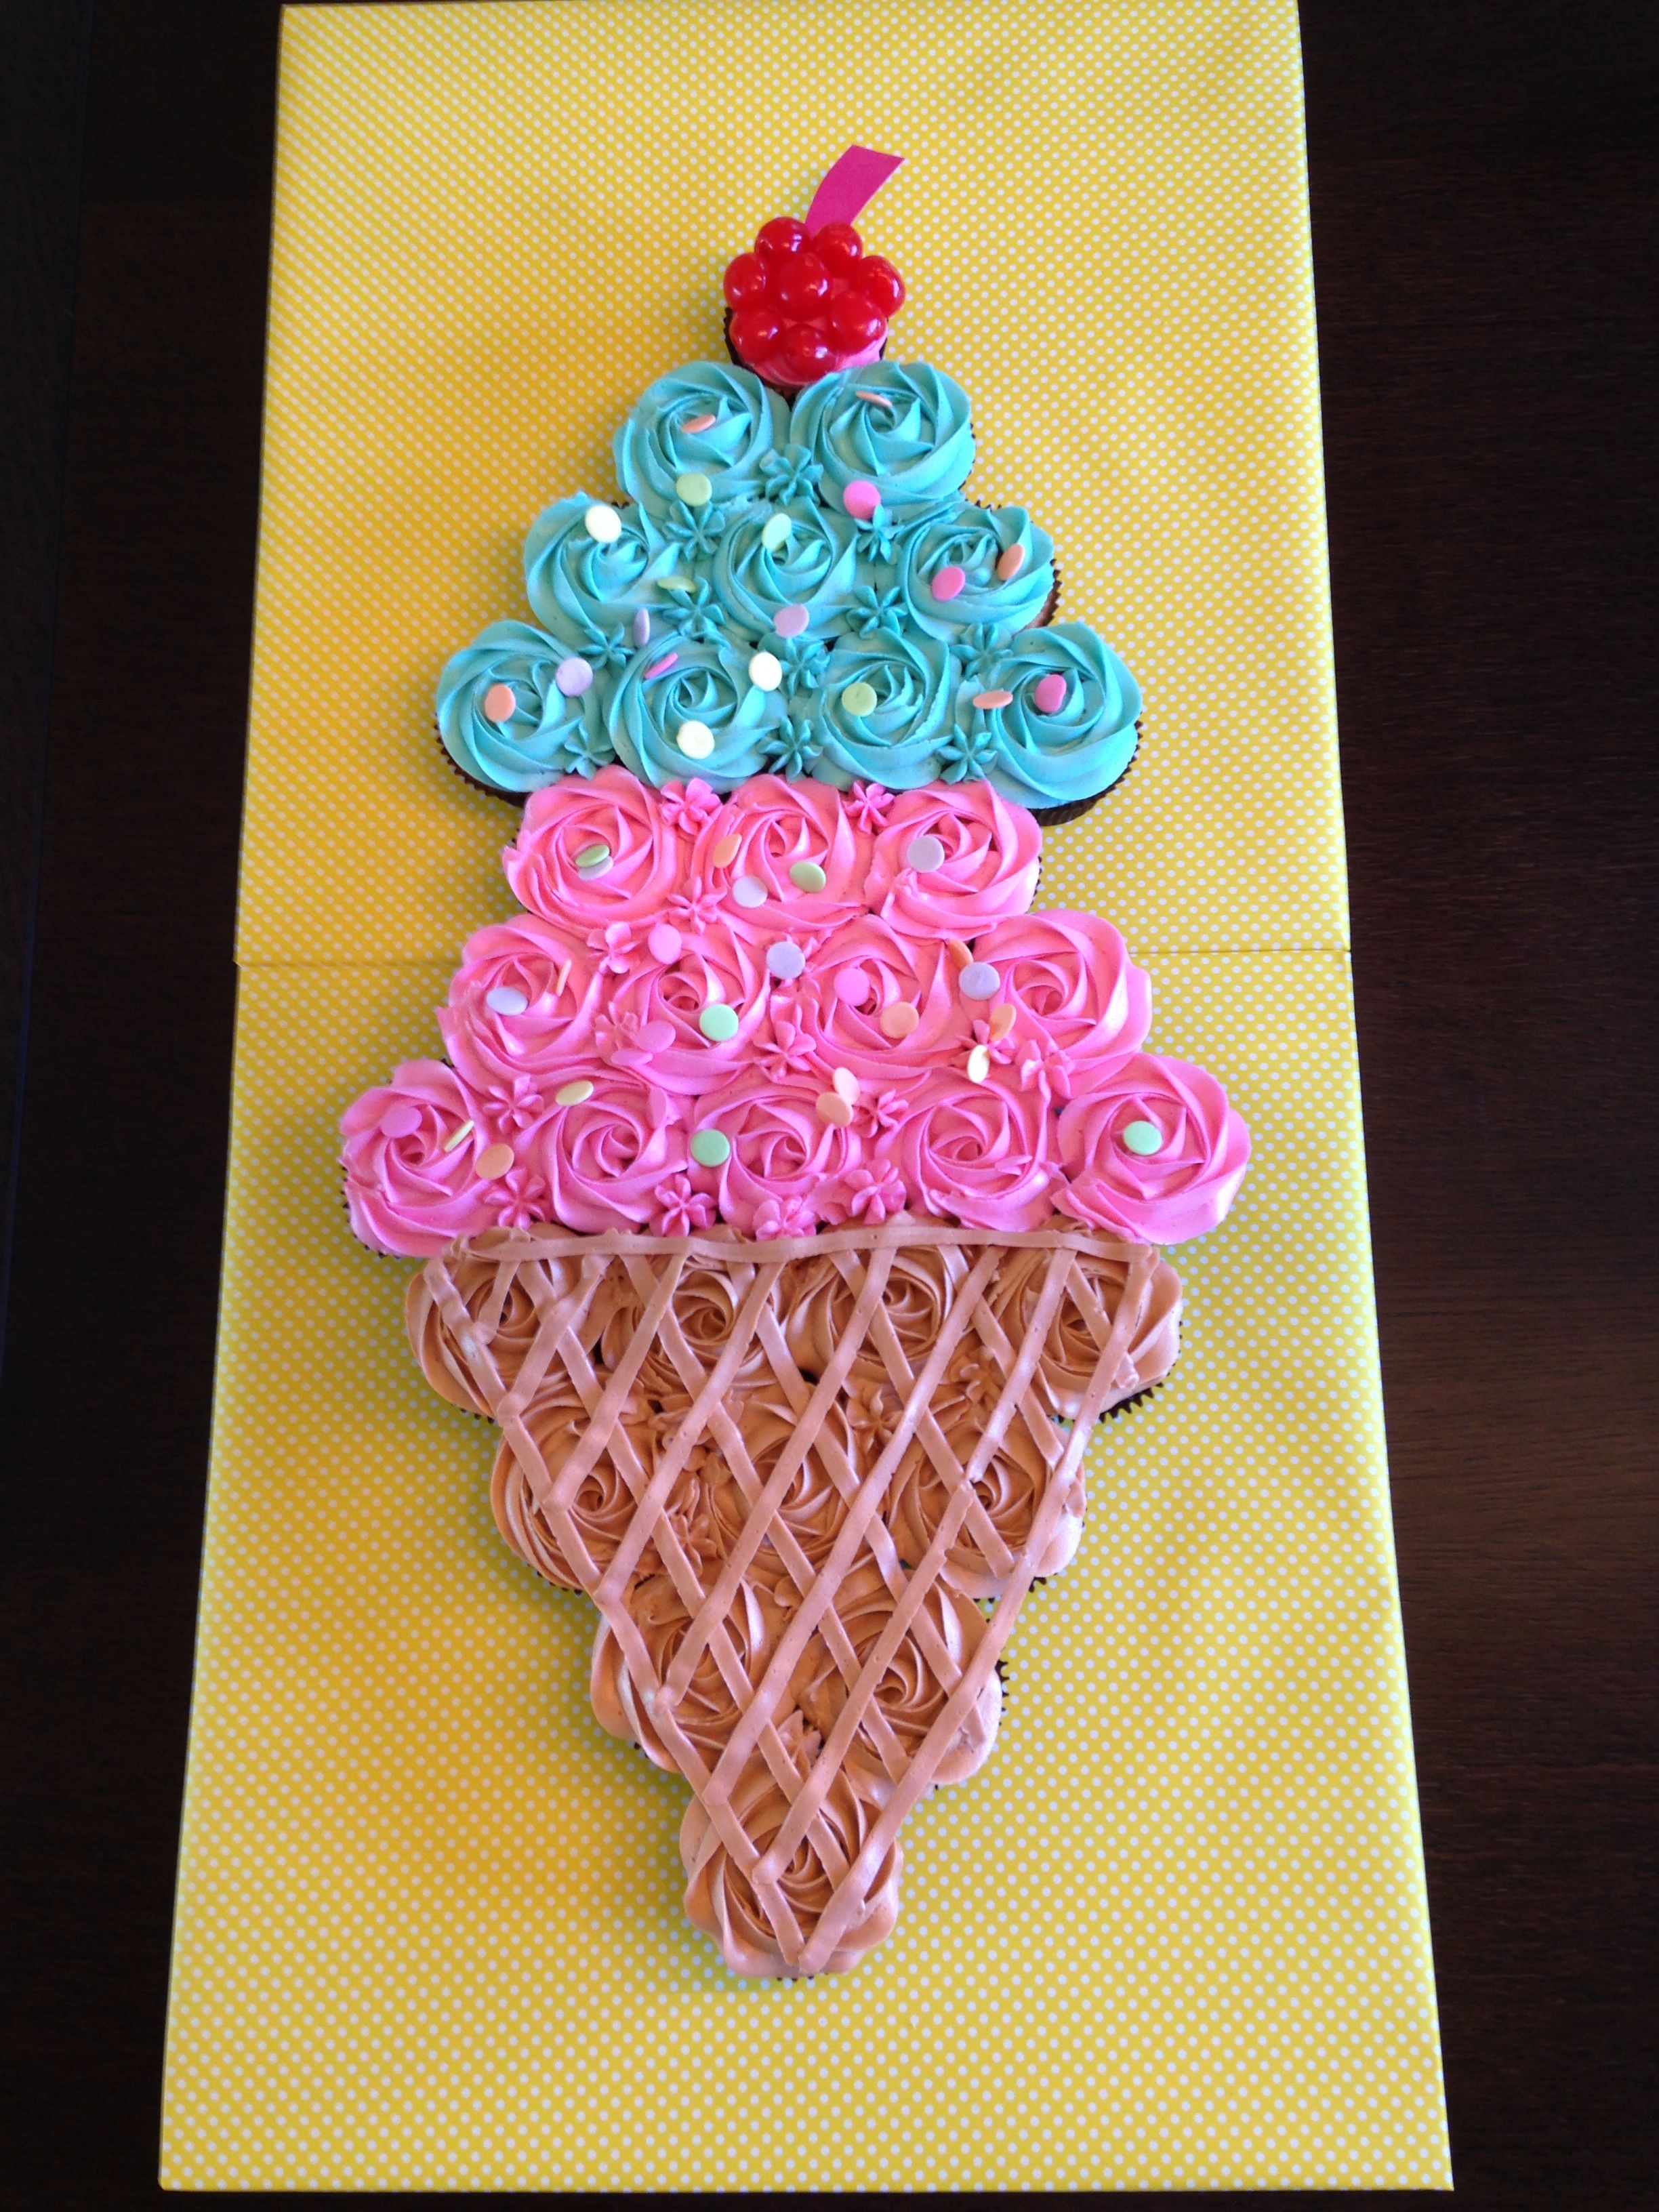 Ice Cream Cone Shaped Cake Made From Cupcakes